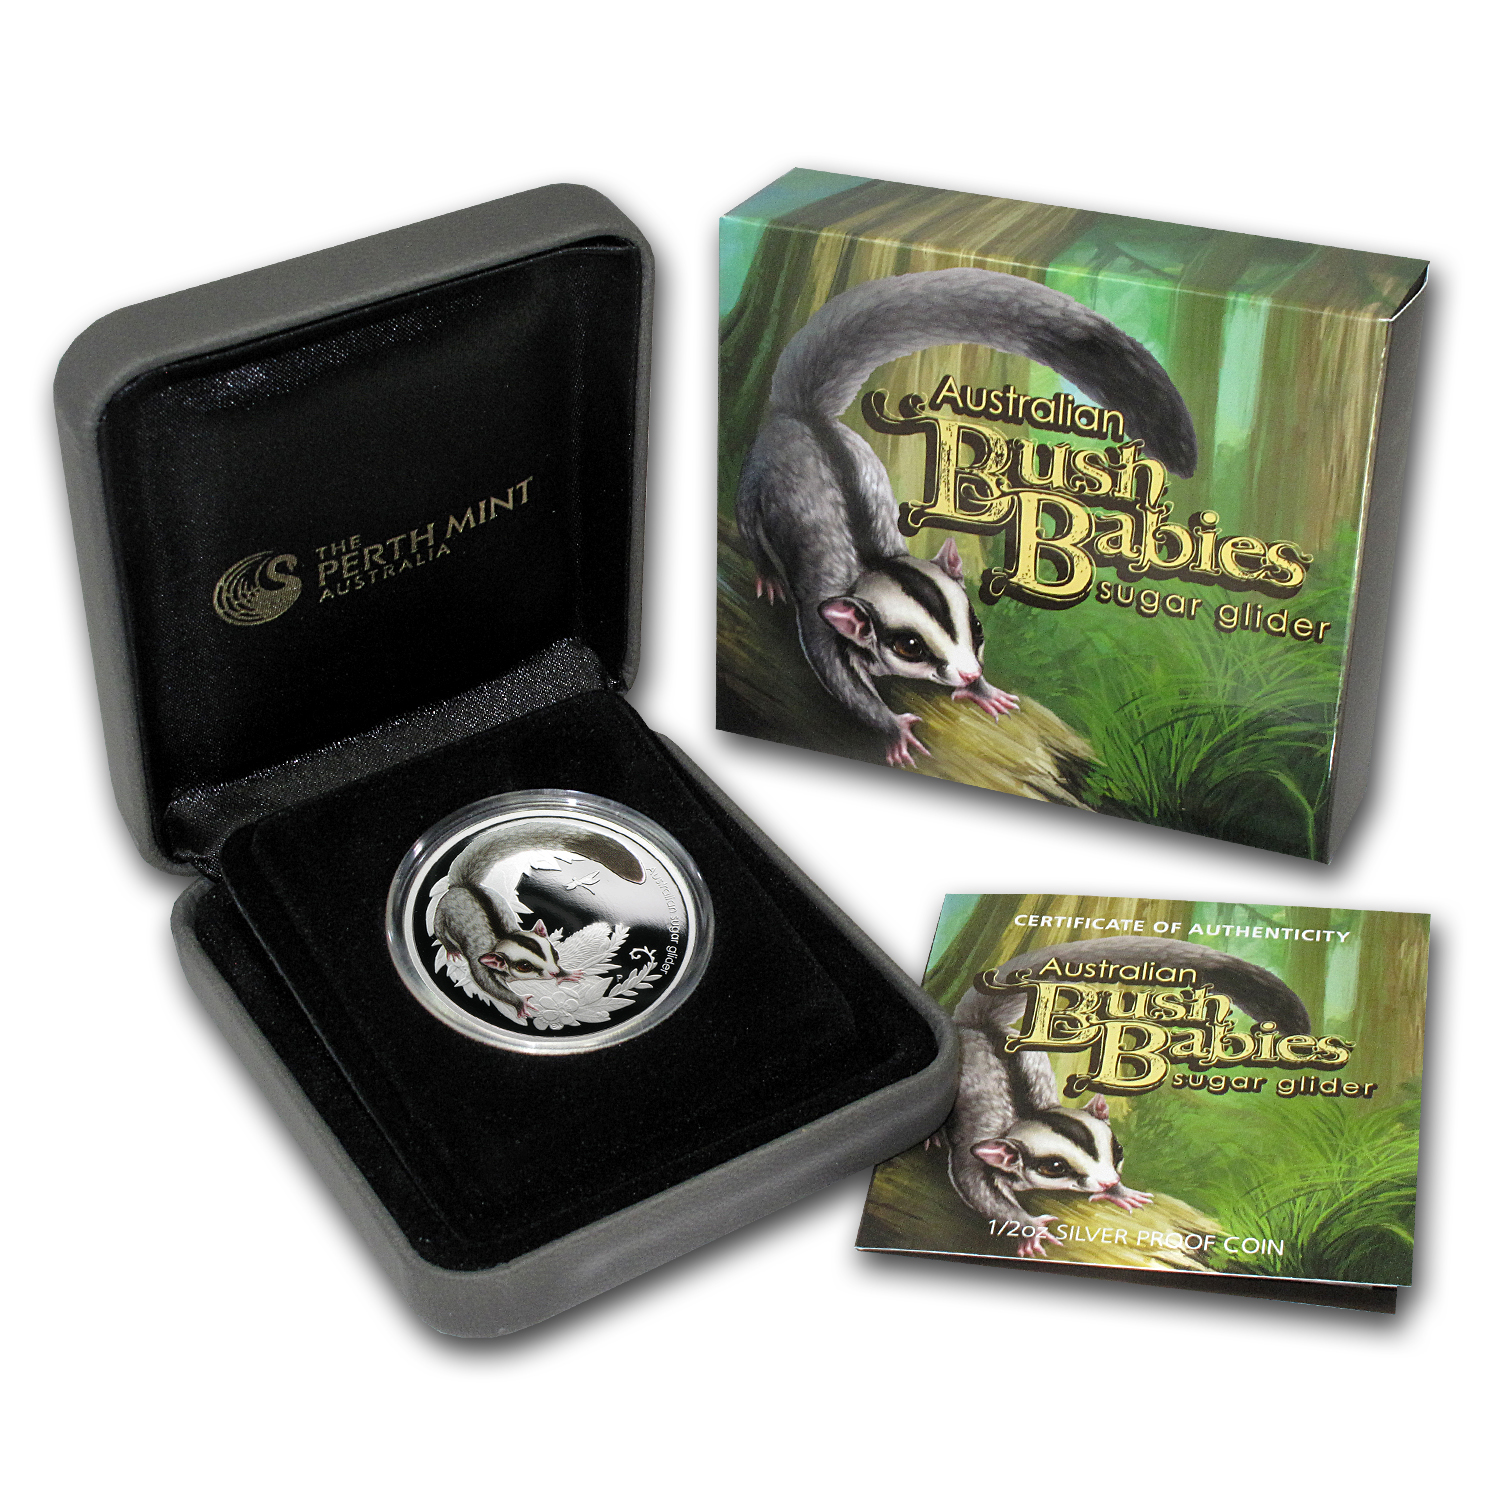 2010 1/2 oz Proof Silver Australian Bush Babies Sugar Glider